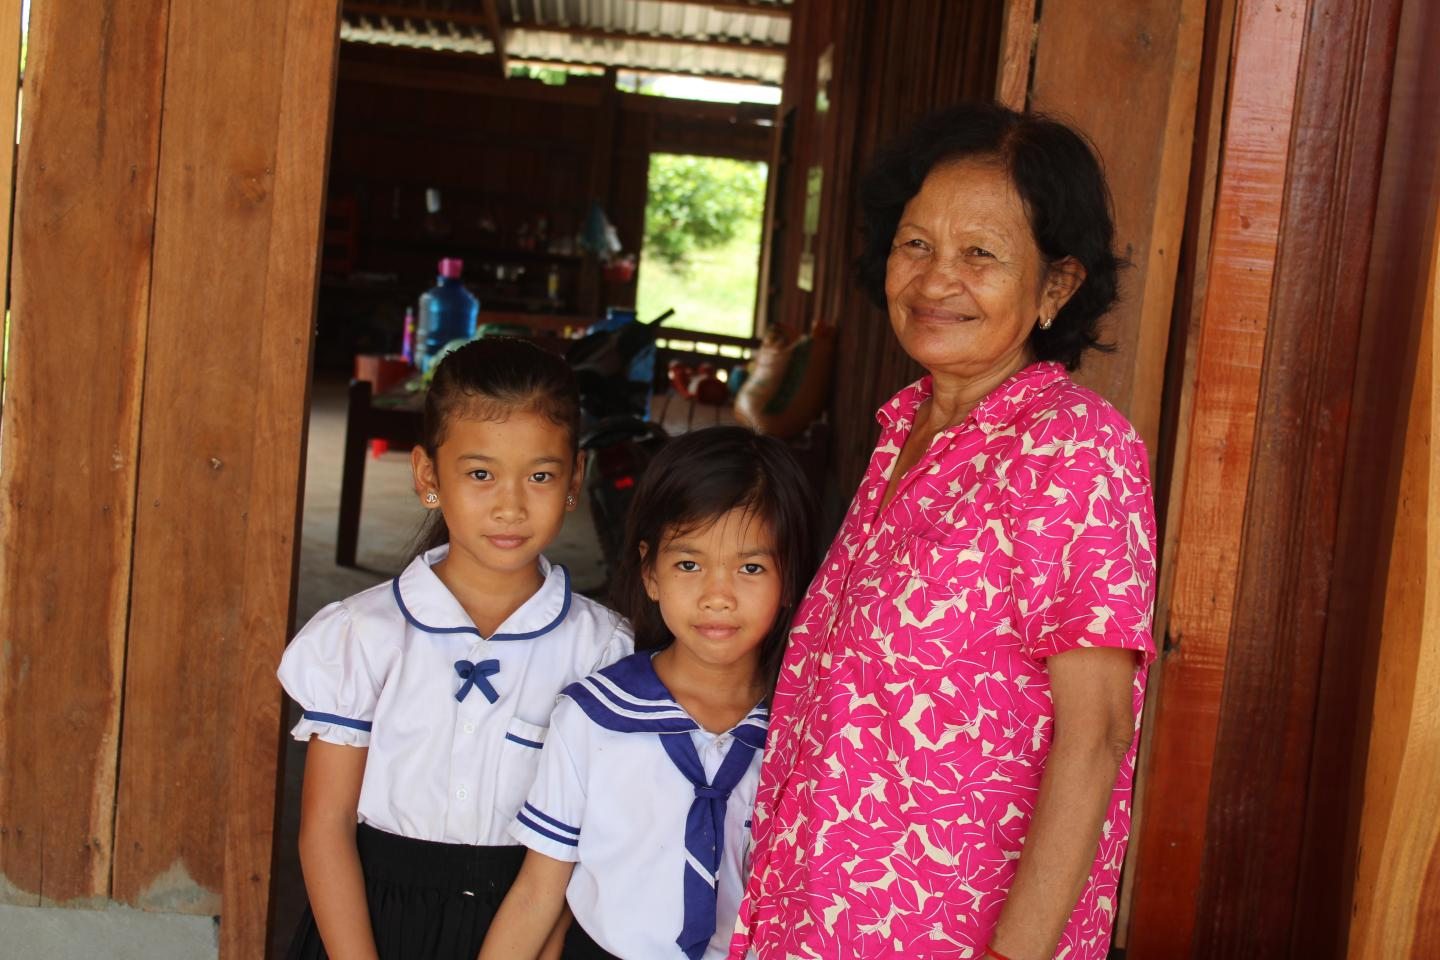 Two primary school students at O Kandea School with their grandmother in Sambo District, Kratie. August 2019.